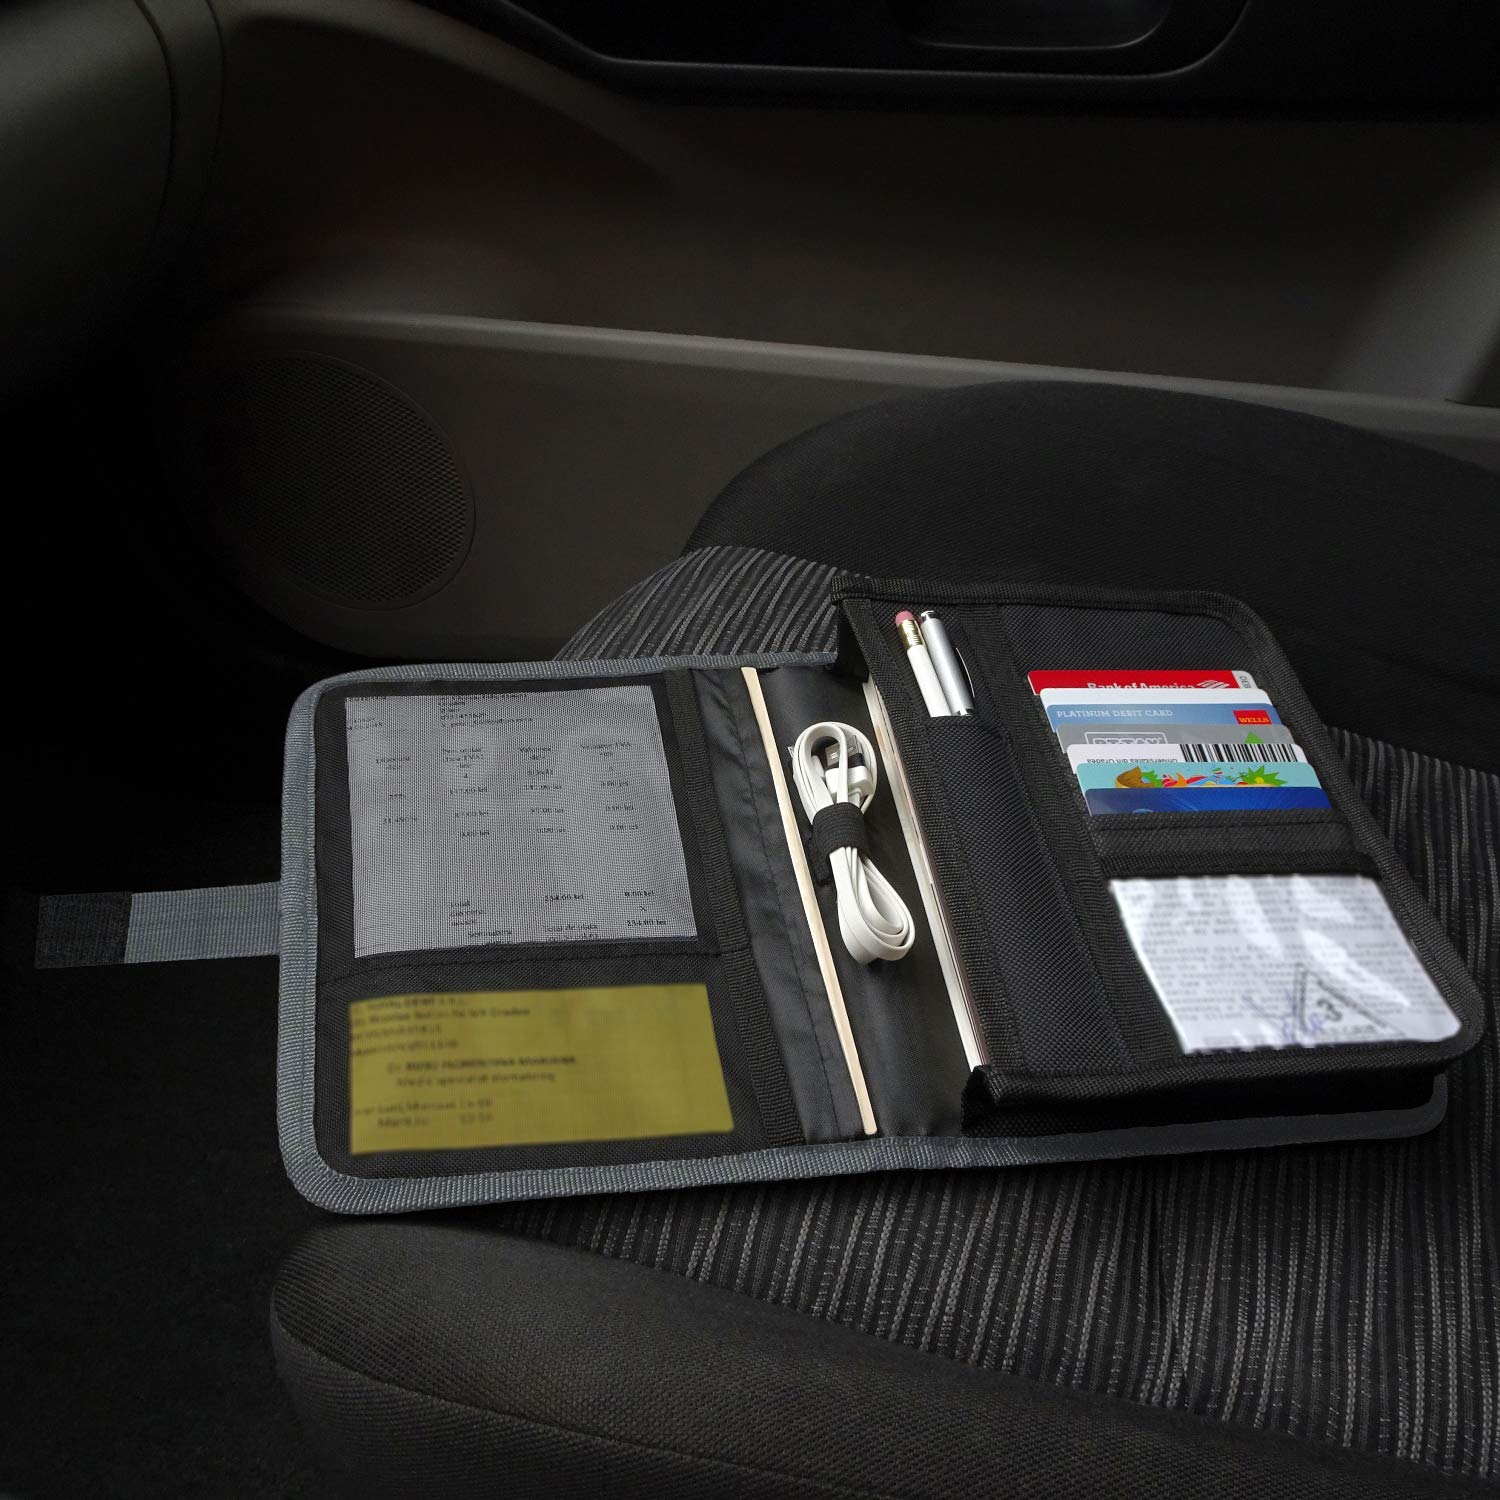 Owner Manual Case Pouch BLACK Vehicle Storage Wallet for Registration /& Insurance Card GRAY BUNDLE Car Document Holder BLUE Glove Box Compartment Organizer